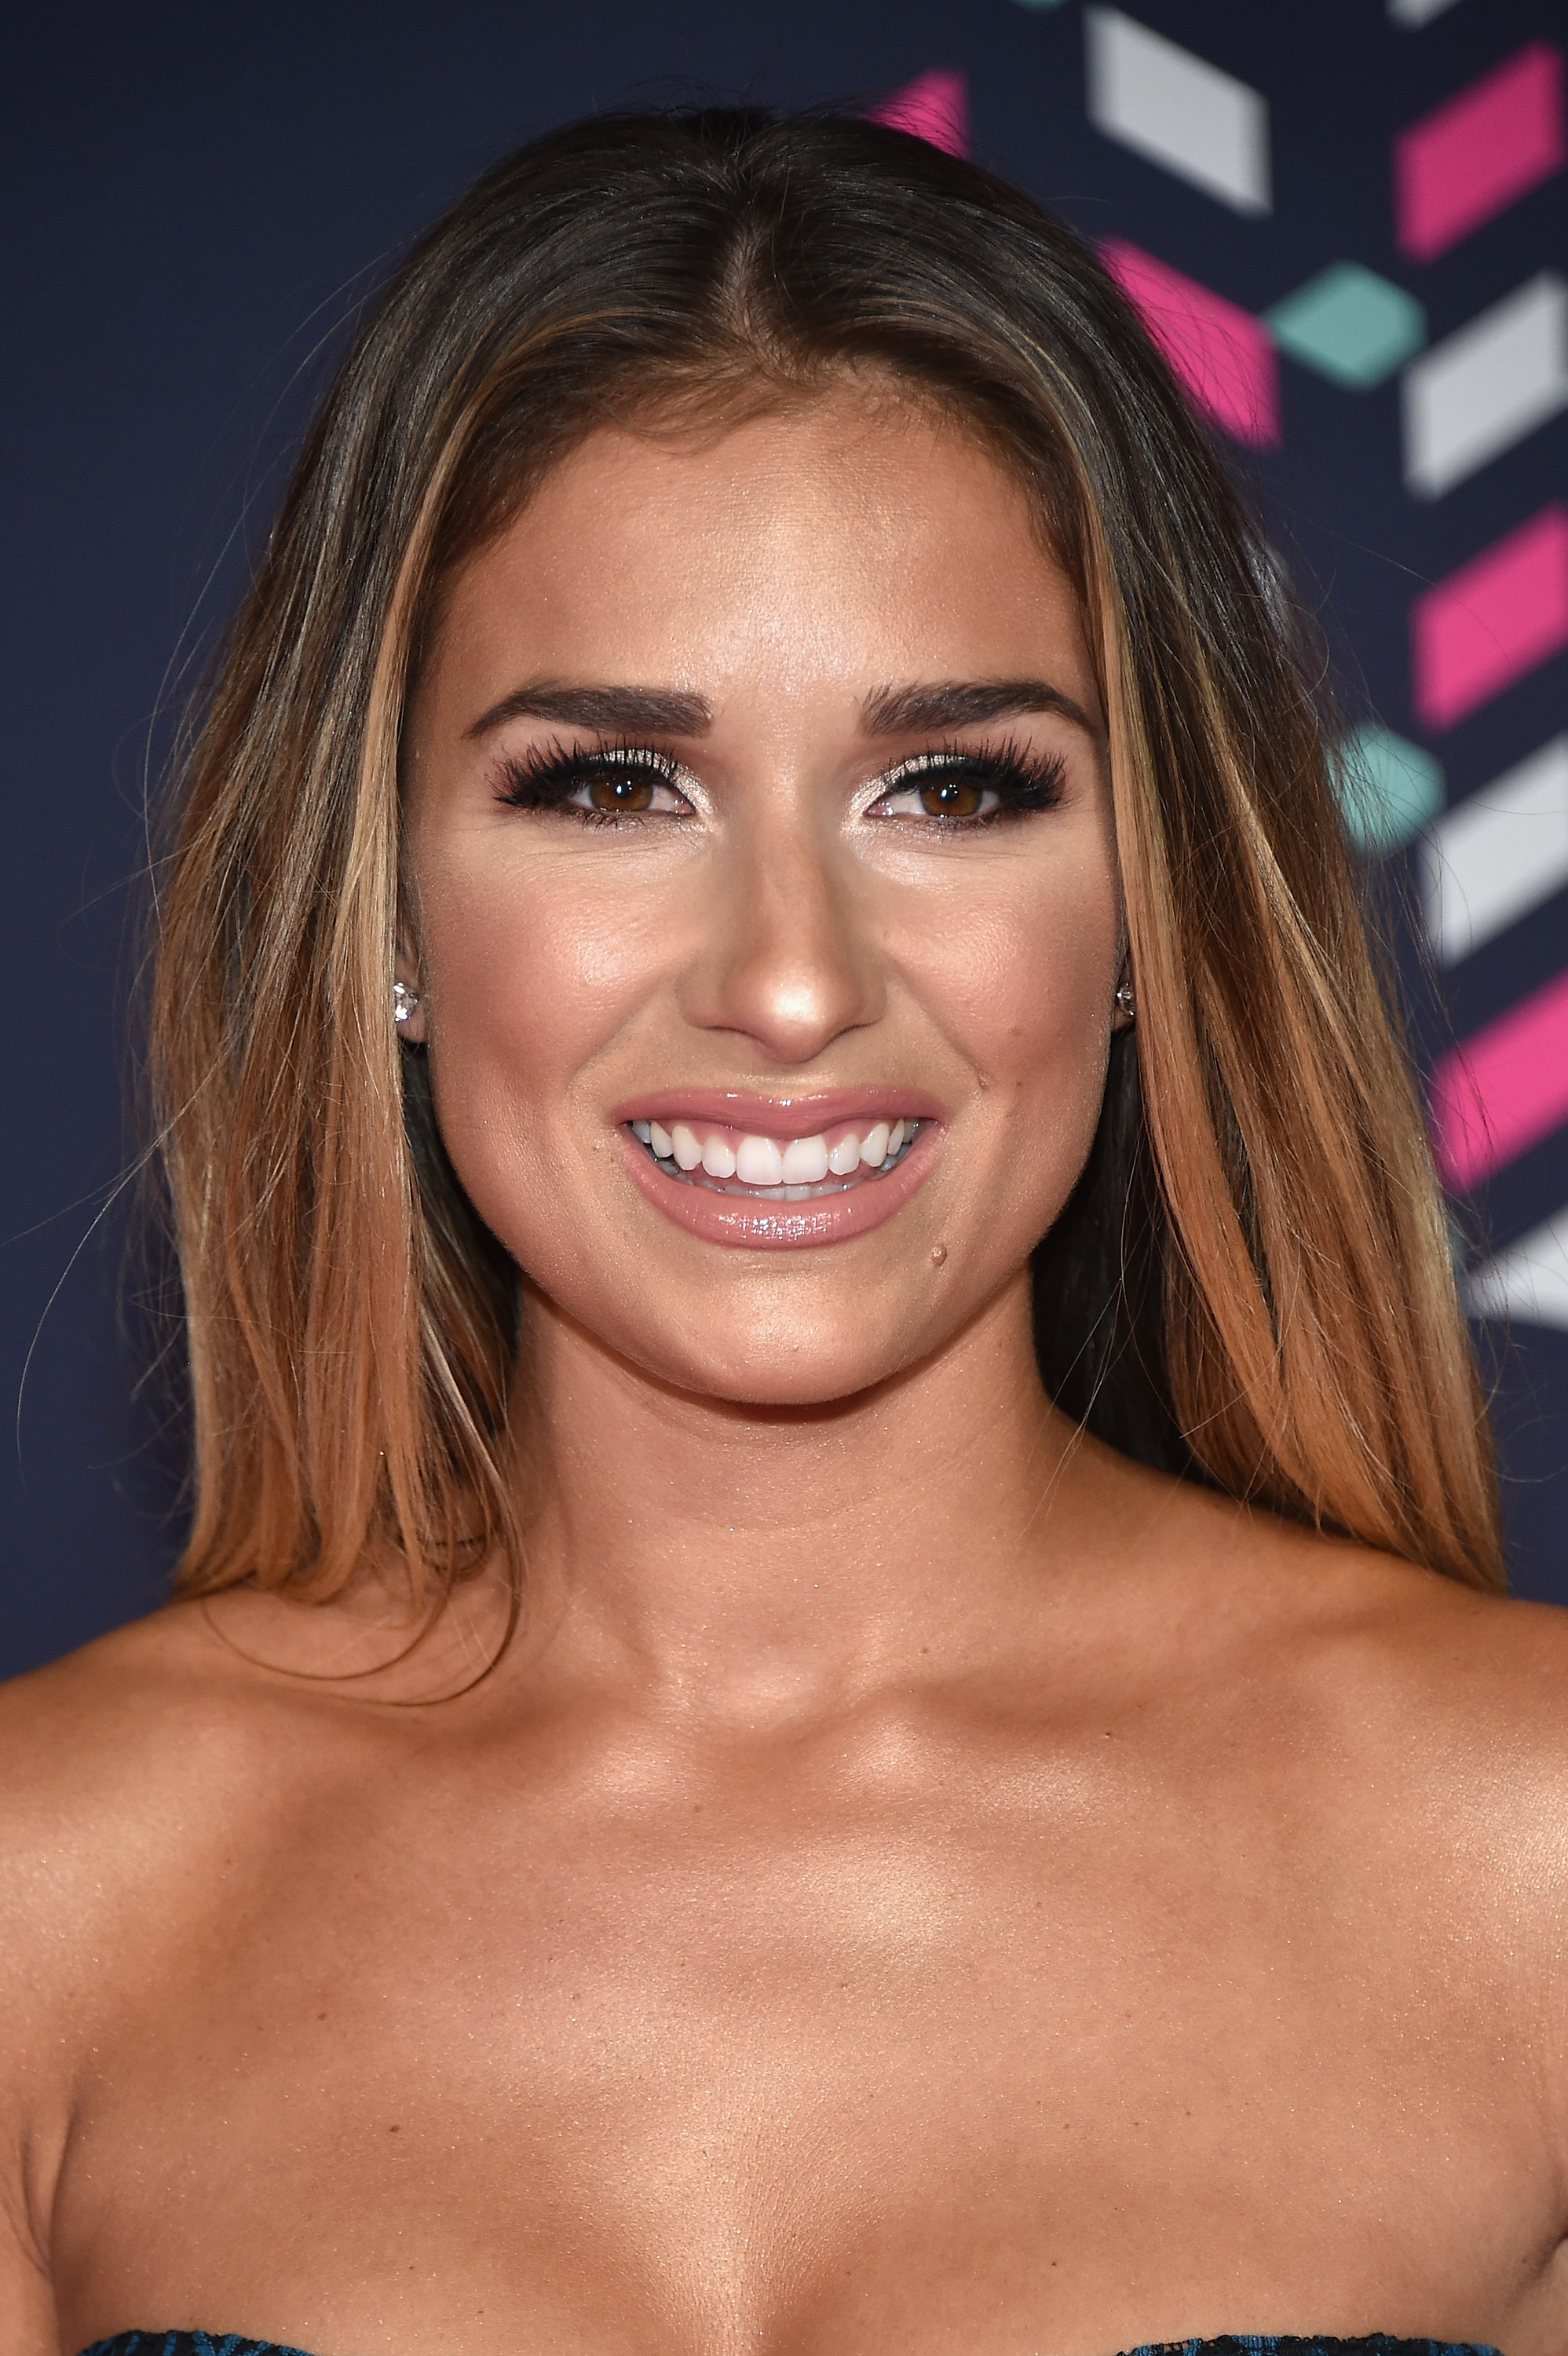 Where To Buy Jessie James Decker's Lip Kit For The Perfect ...